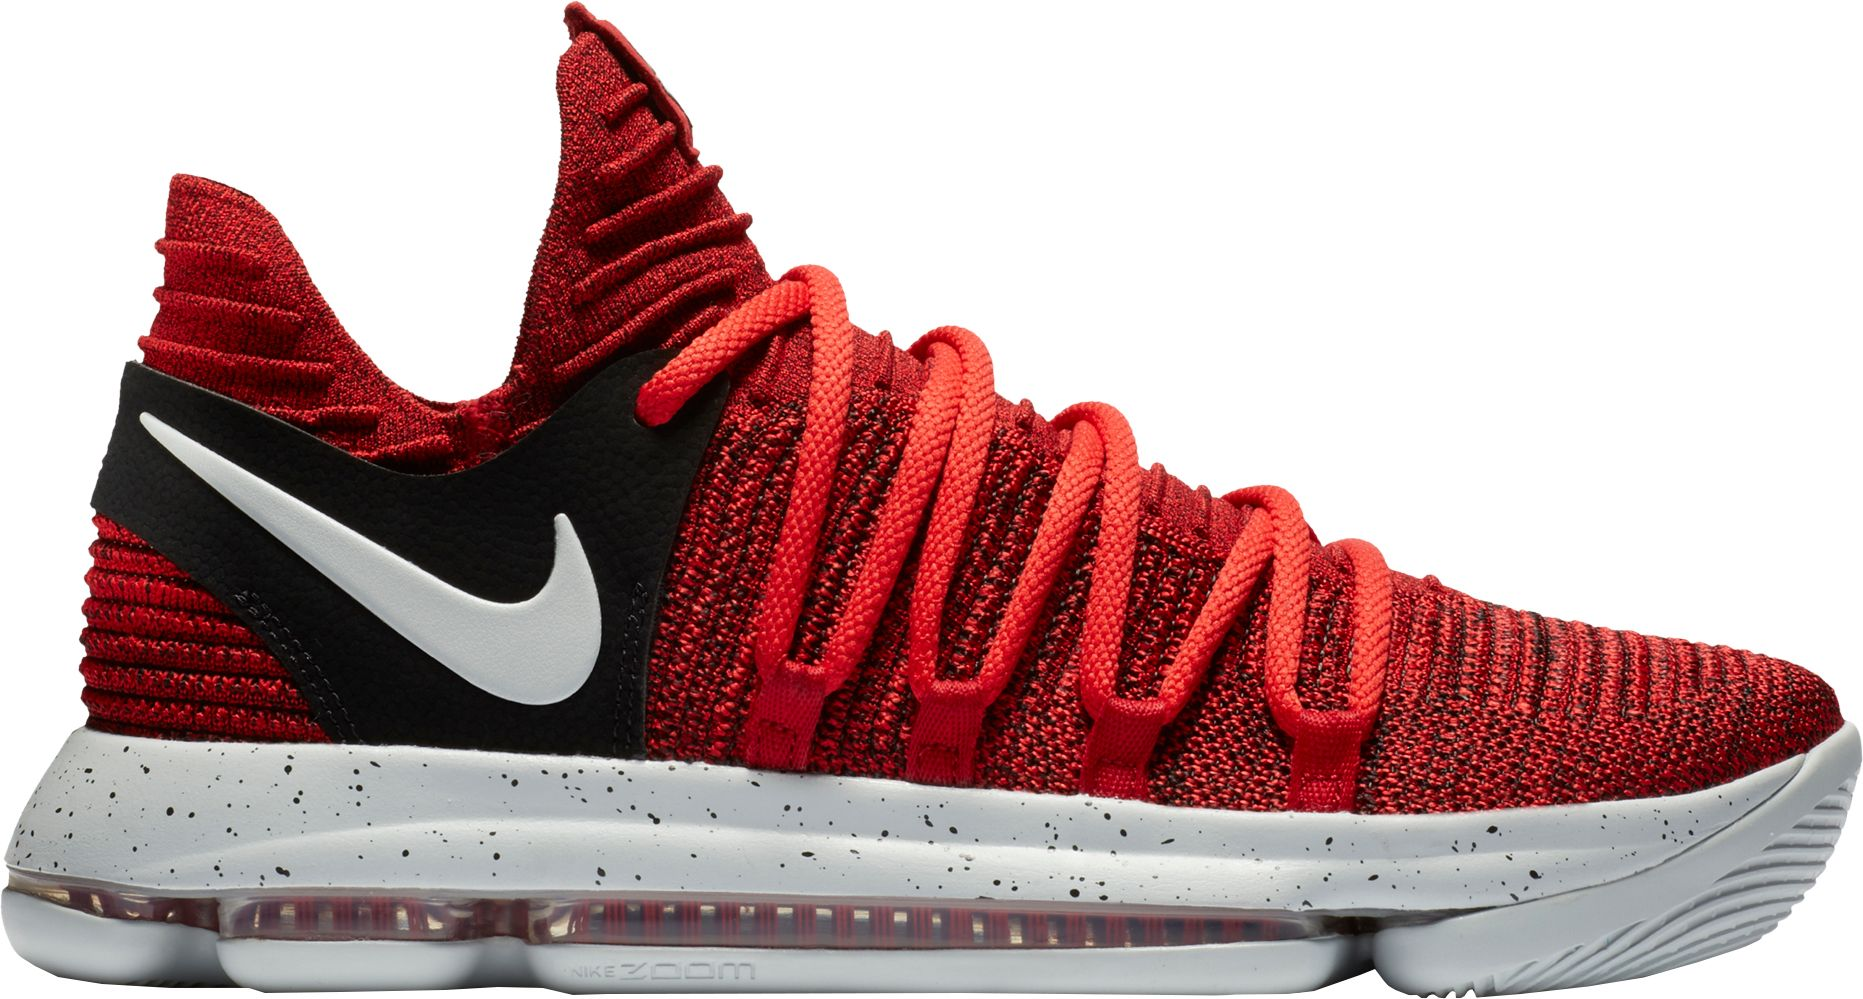 Kevin durant signature shoes, clothing and accessories for basketball and  casual dress. The kd line doesn't stop at sneakers it also features  snapback hats, ...